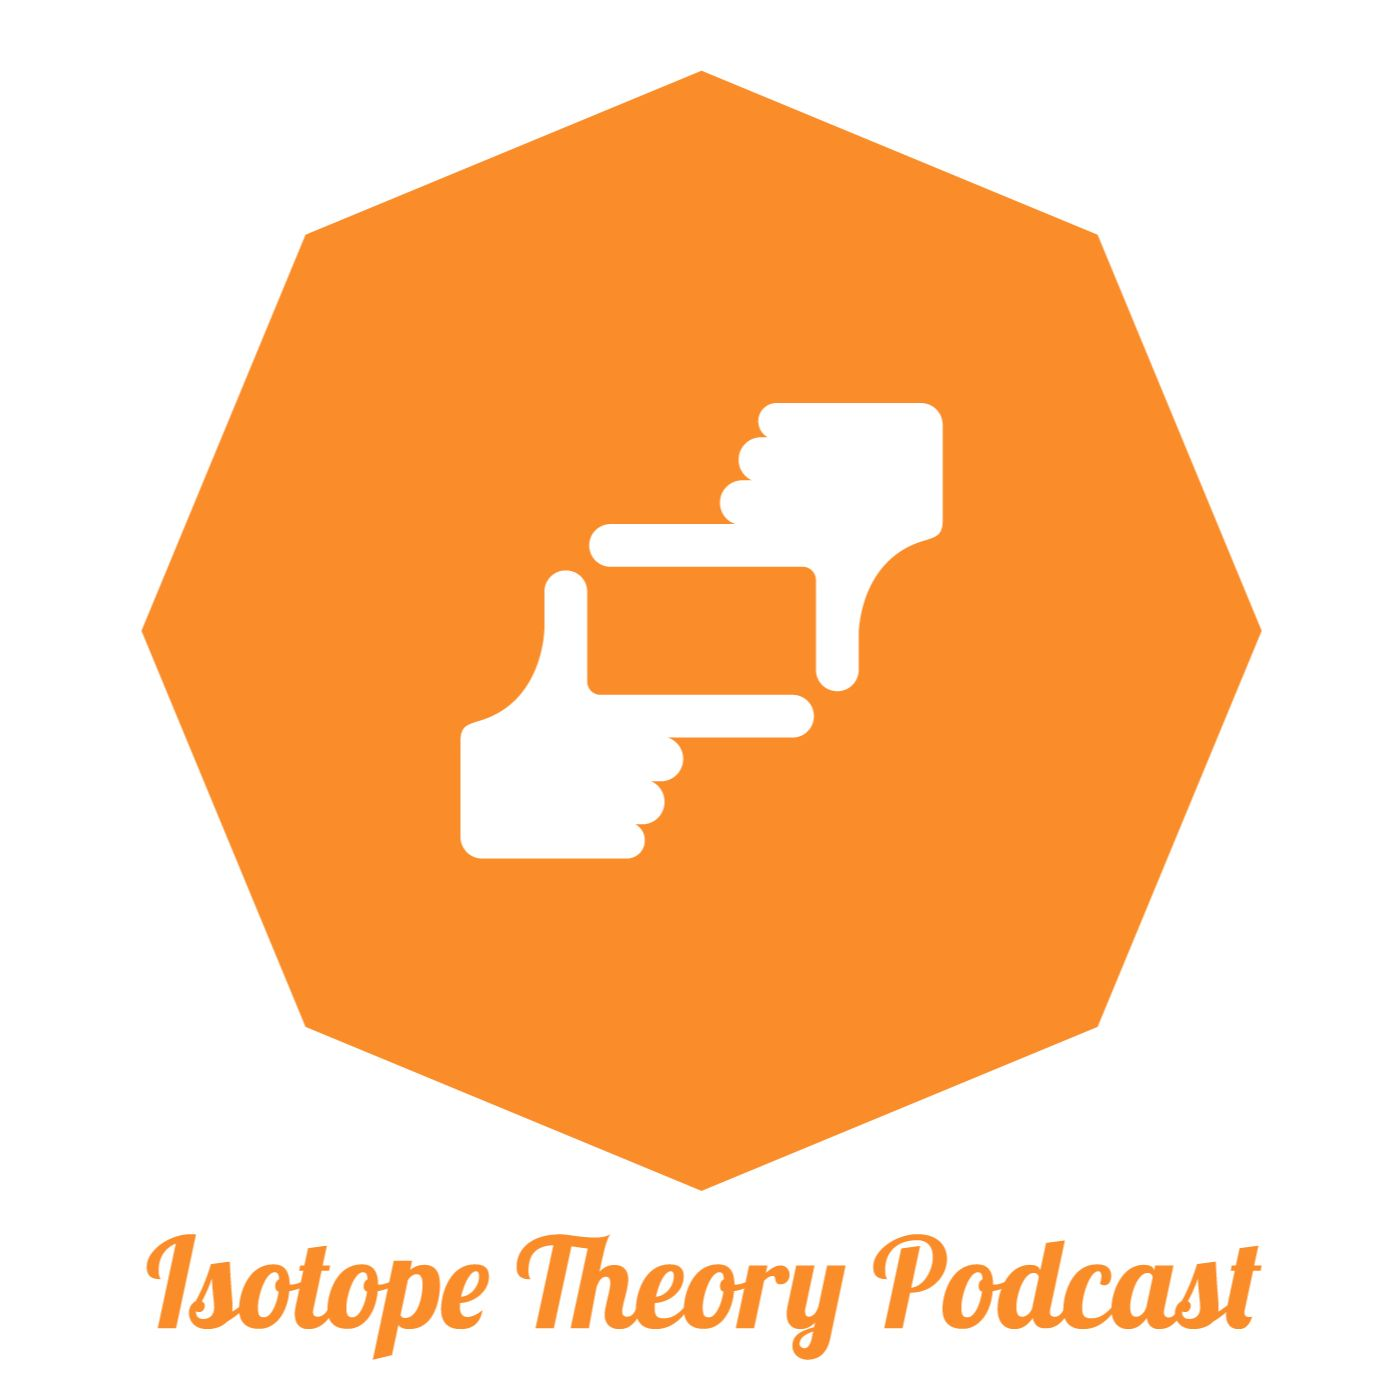 Isotope Theory Podcast